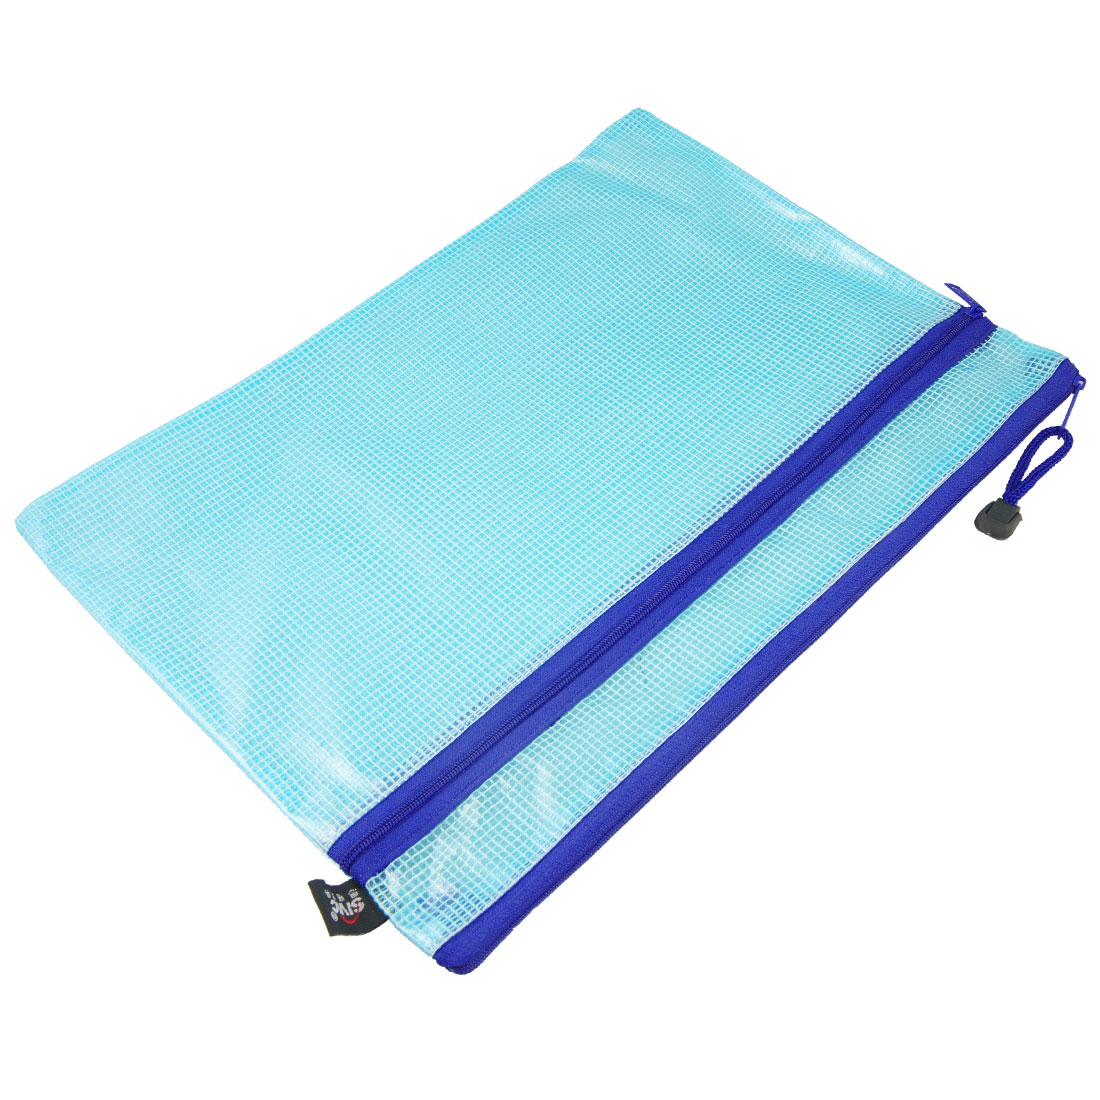 Grid Design Zip Up Blue Clear A4 Paper Document File Bags Holder